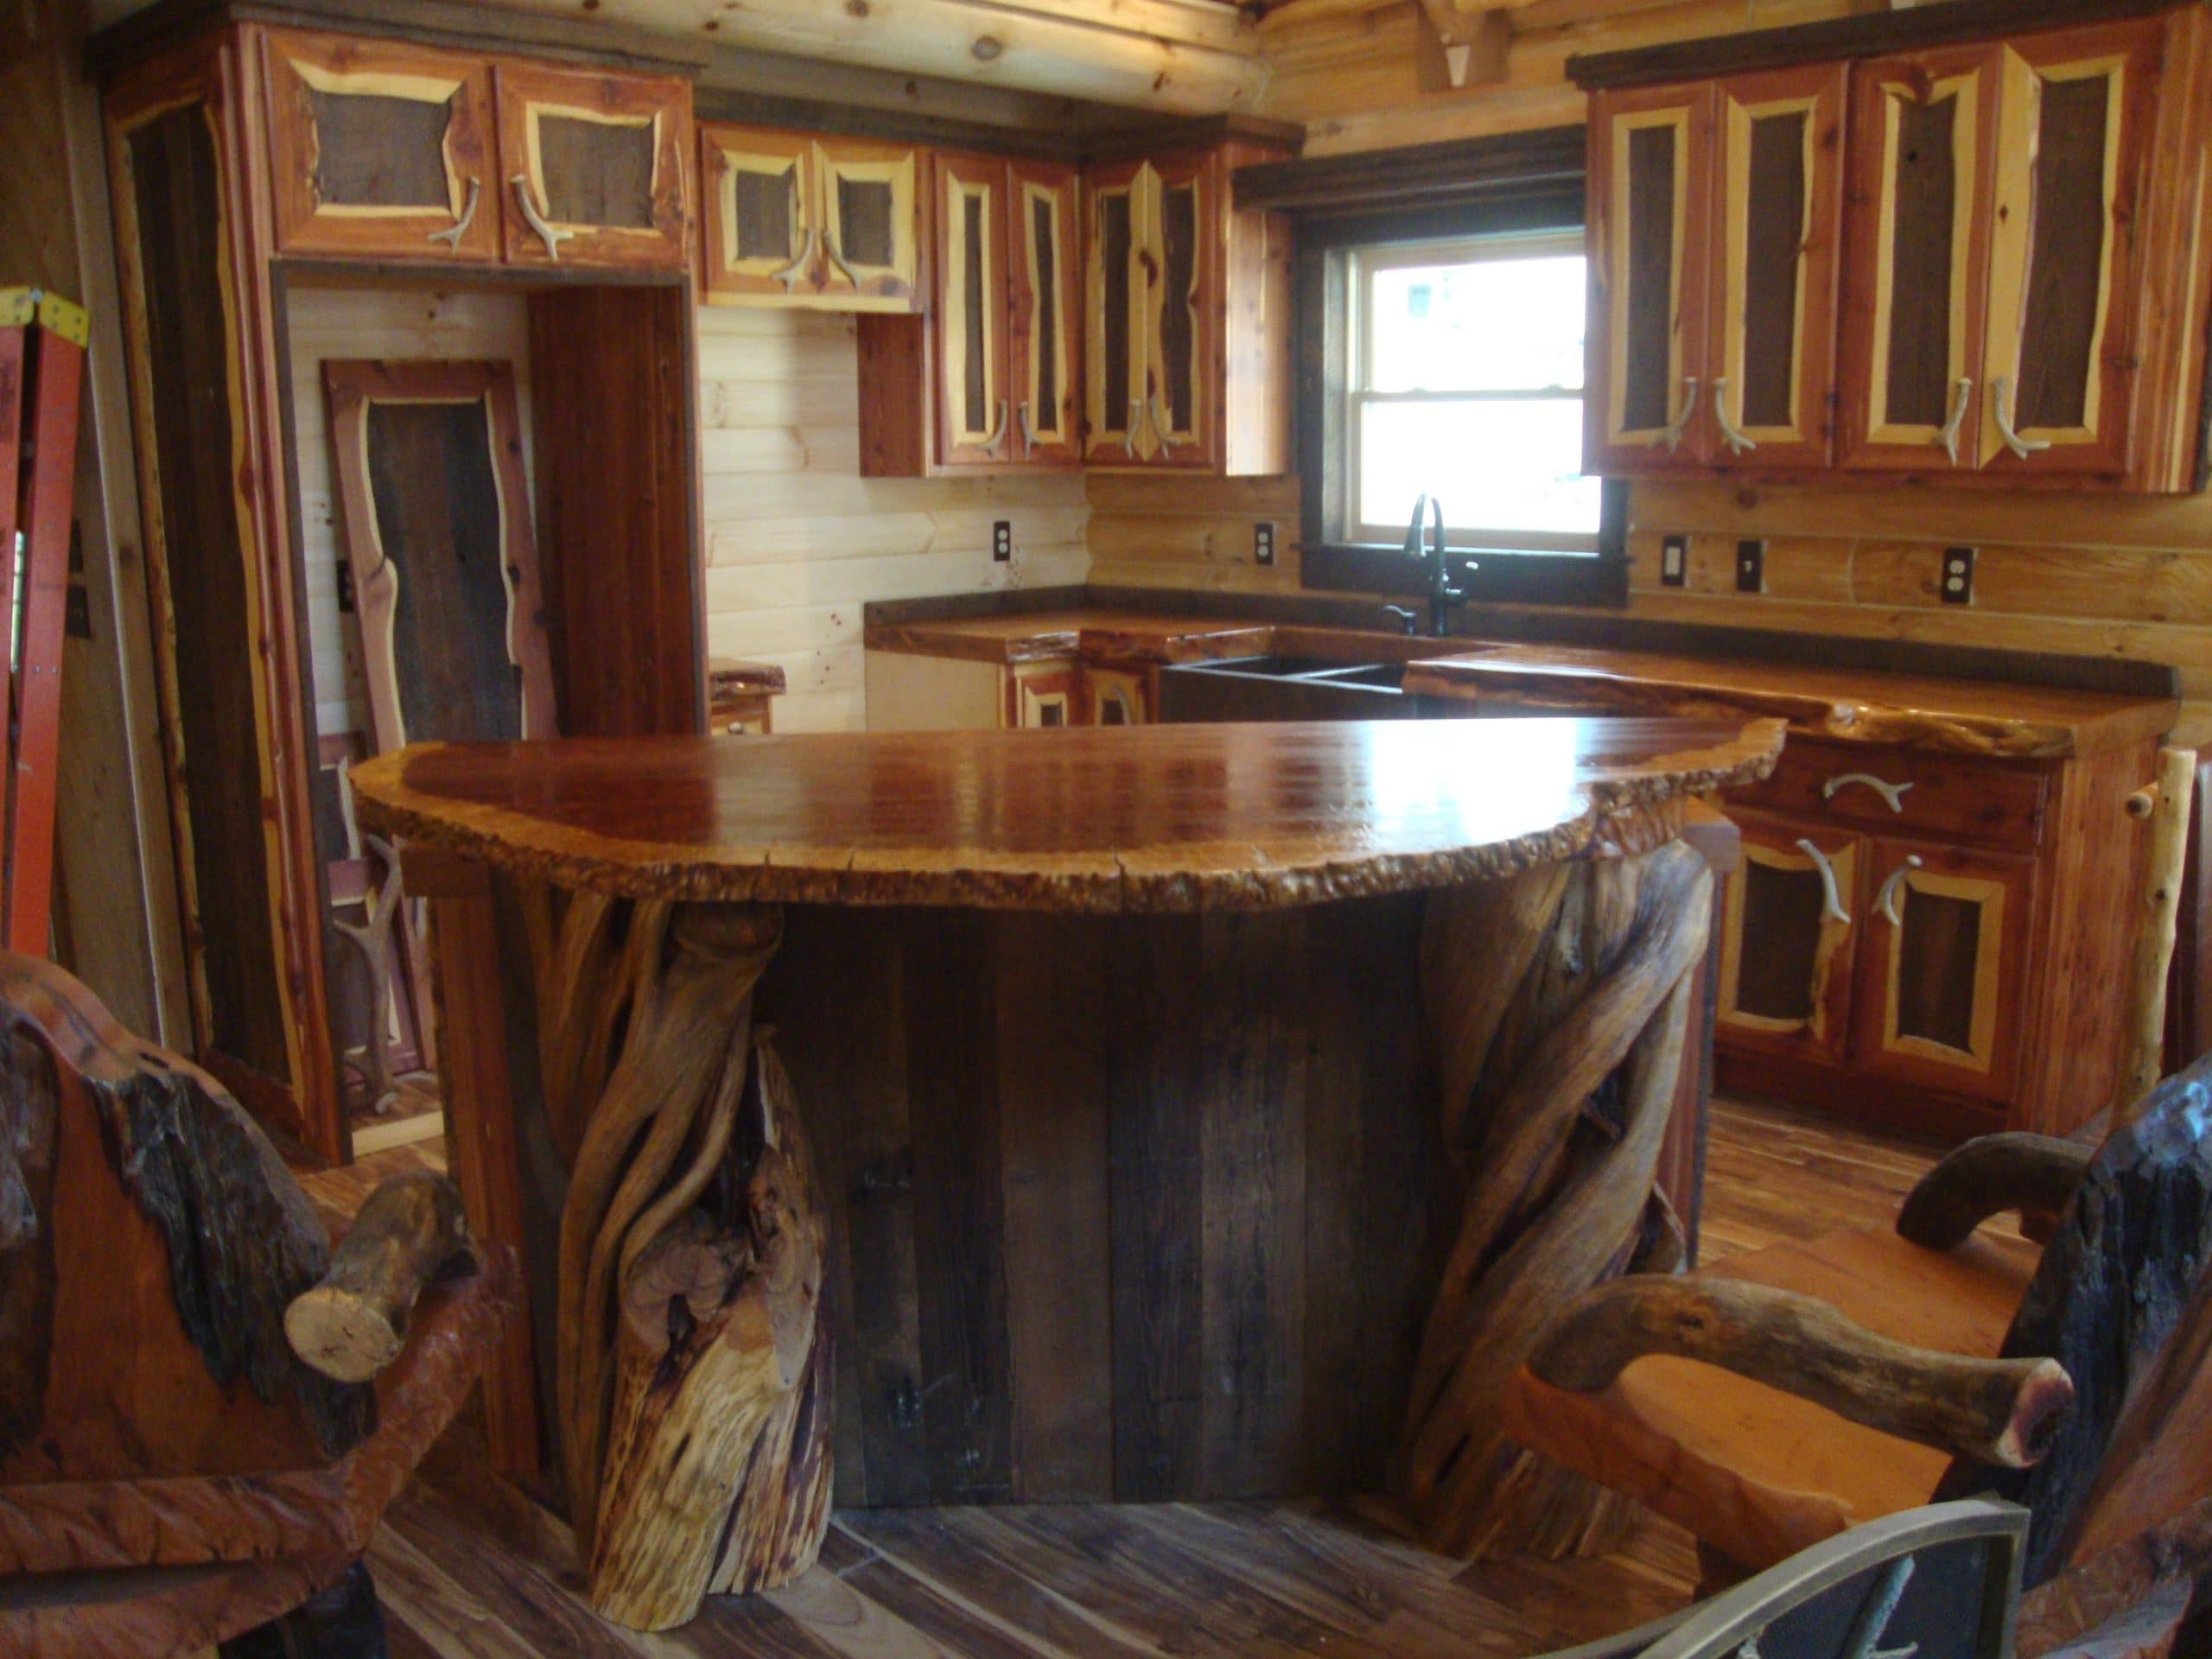 Rustic Wood Bar Tops http://littlebranchfarm.com/featured-projects/matthews-linden-nc/